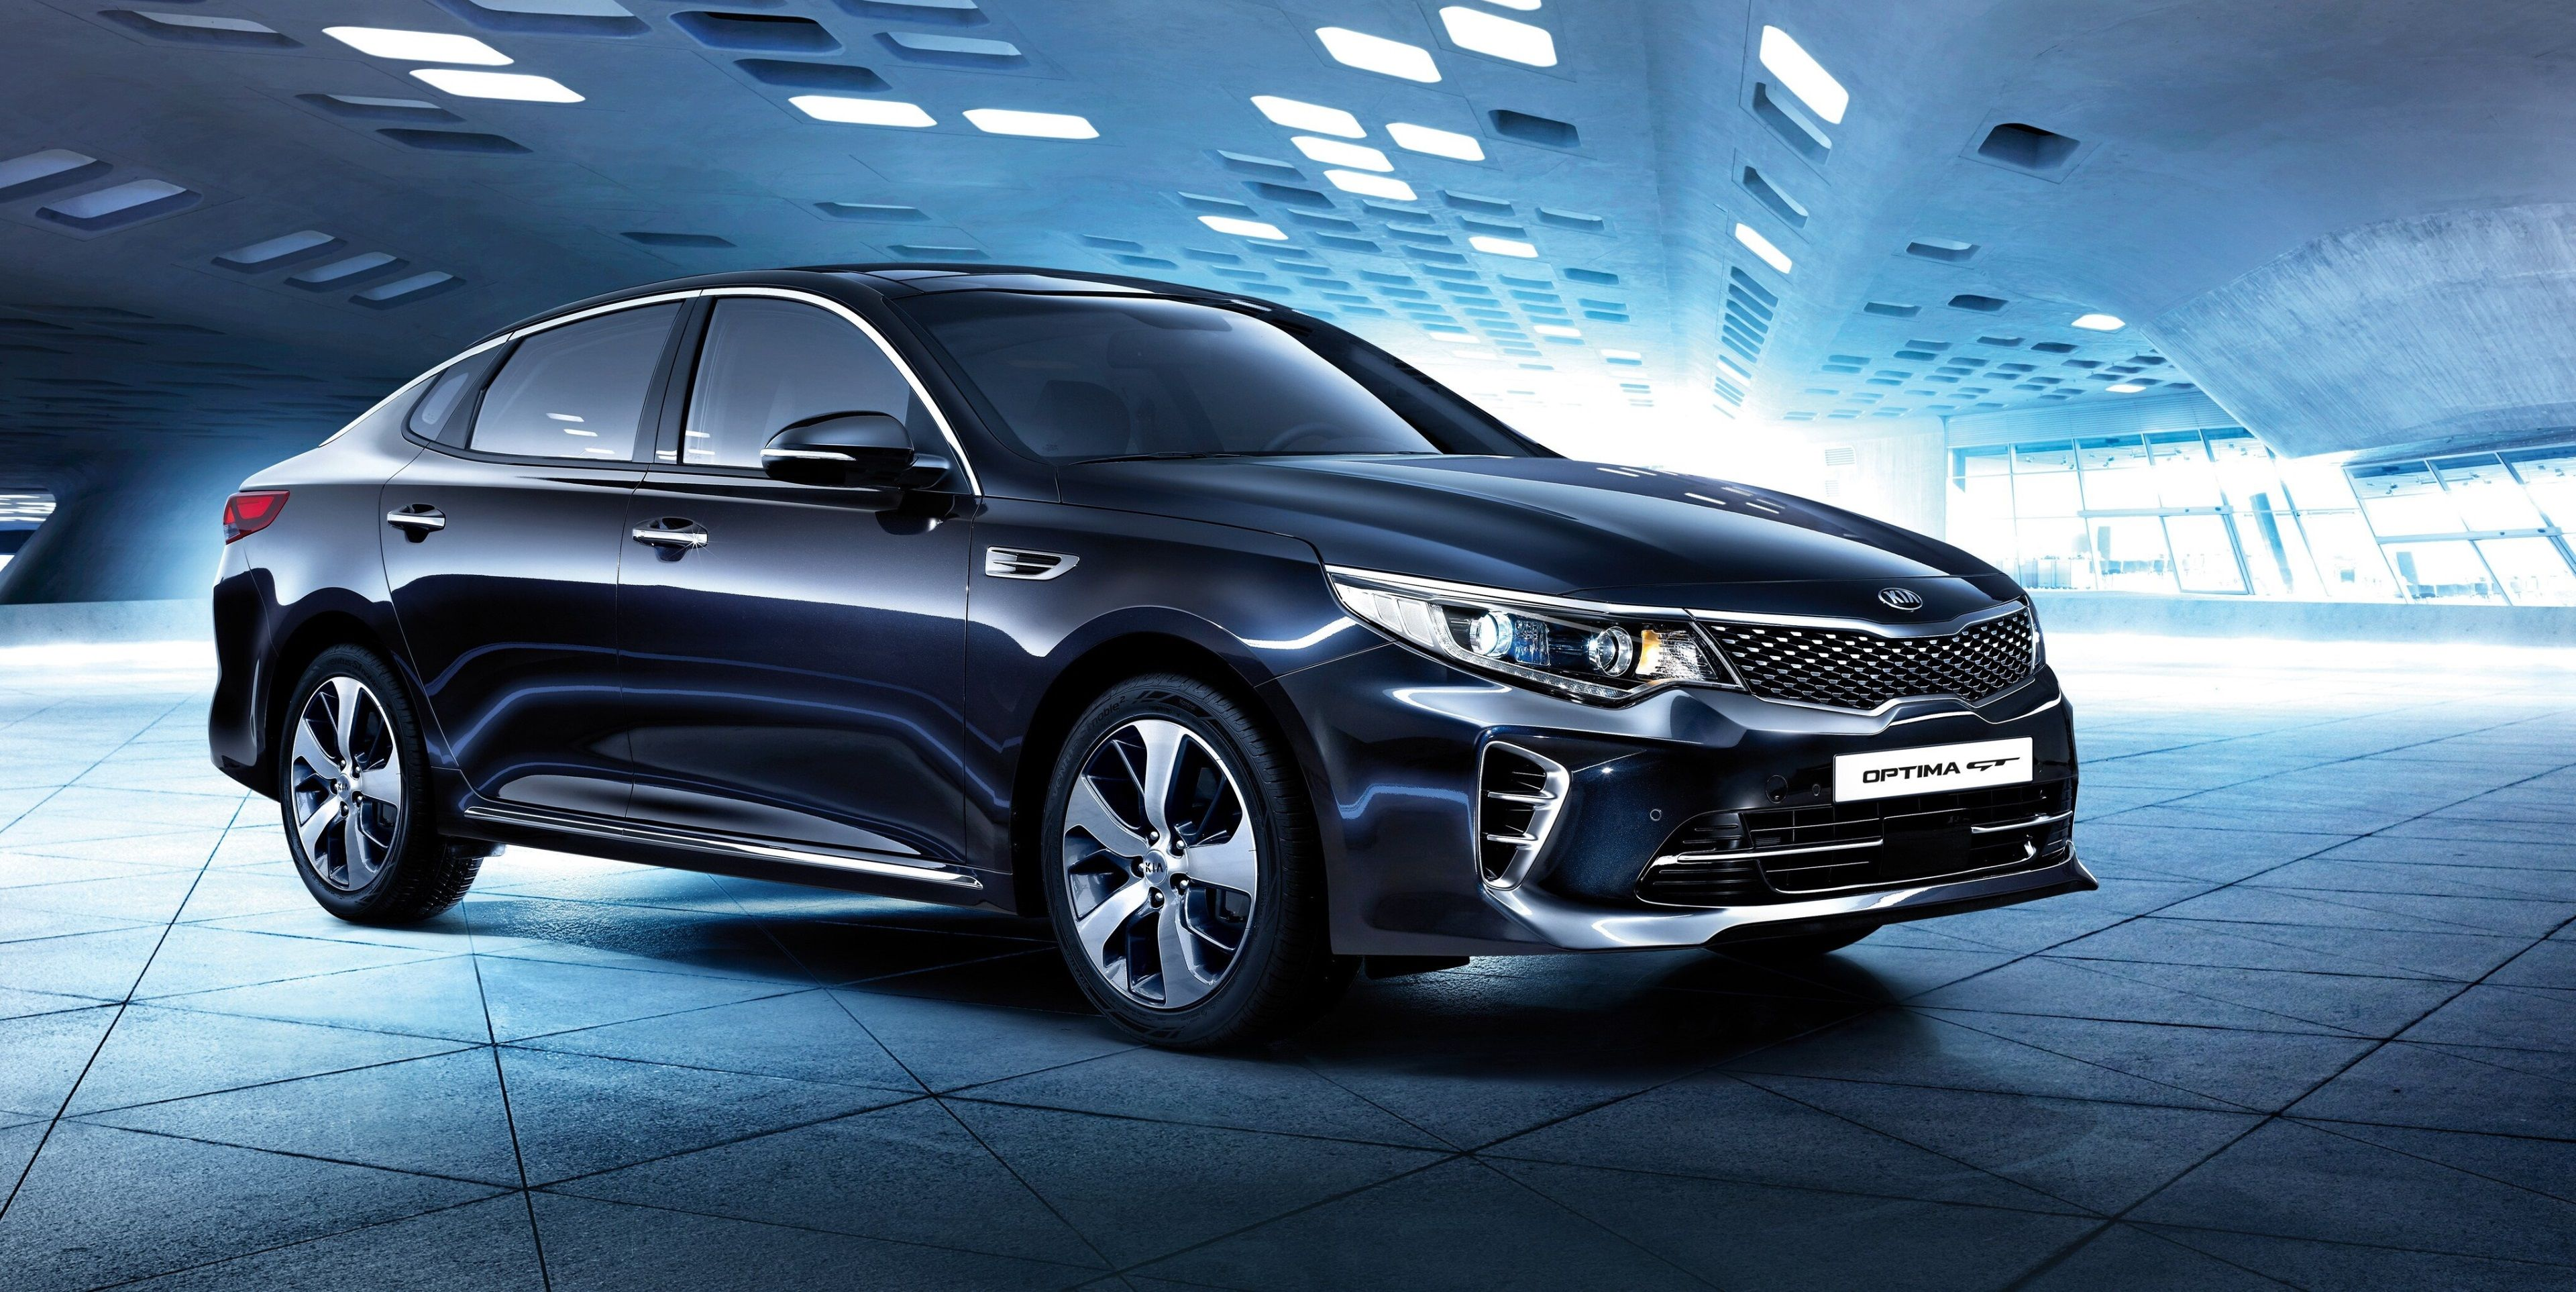 3840x1926 Kia Optima Gt 4k Hd Quality Desktop Wallpaper Dadel Auto S